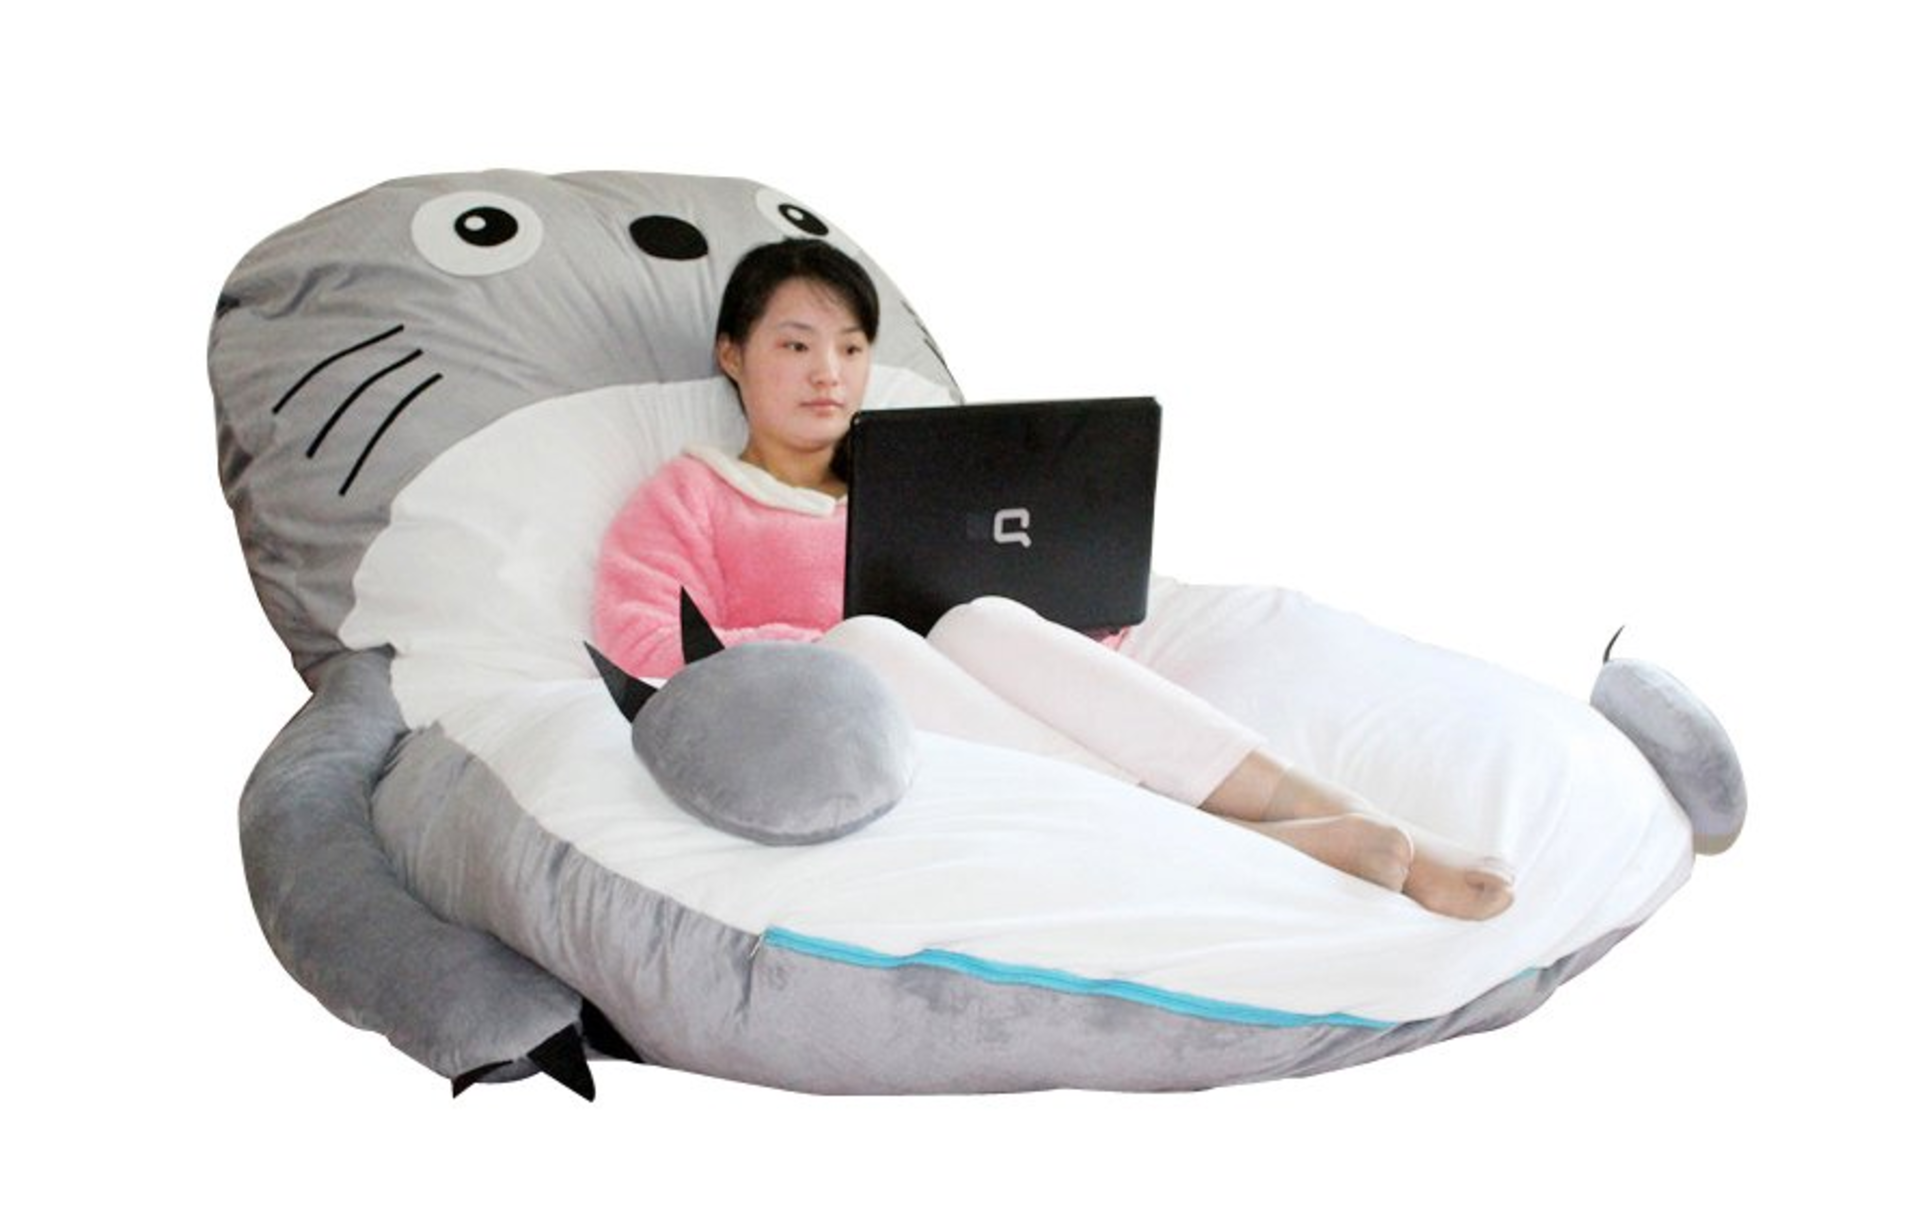 fortable Bed and Sleeping Bag Totoro Home Reviews